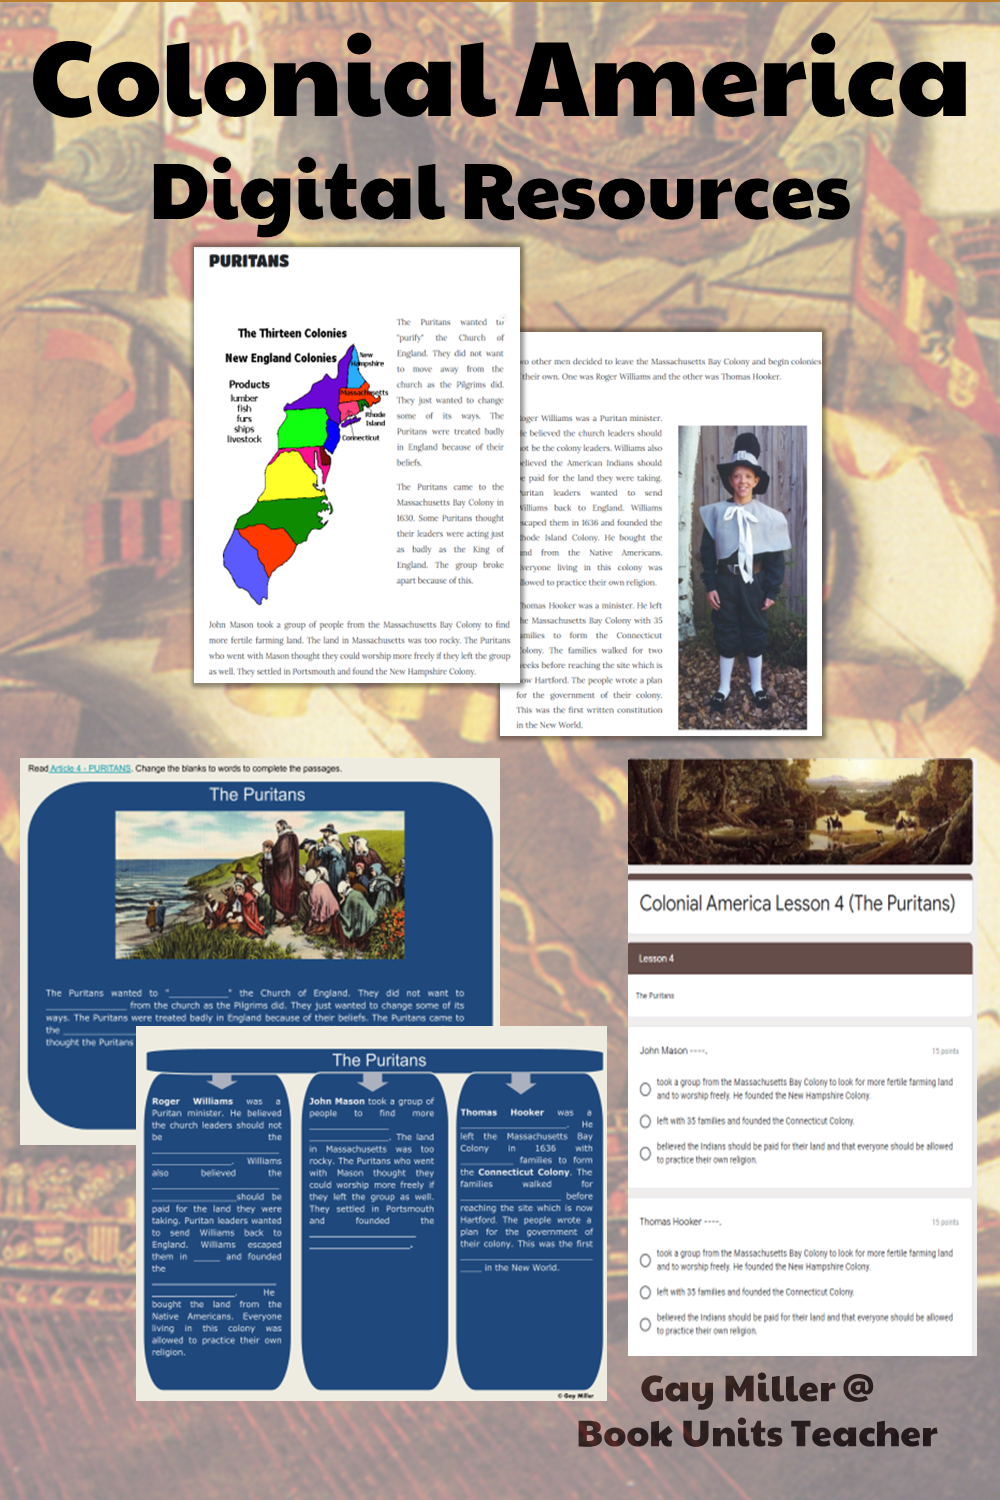 Purchase Colonial America Digital Unit on Teachers Pay Teachers. This activity is great for upper elementary including 4th, 5th, and 6th graders.